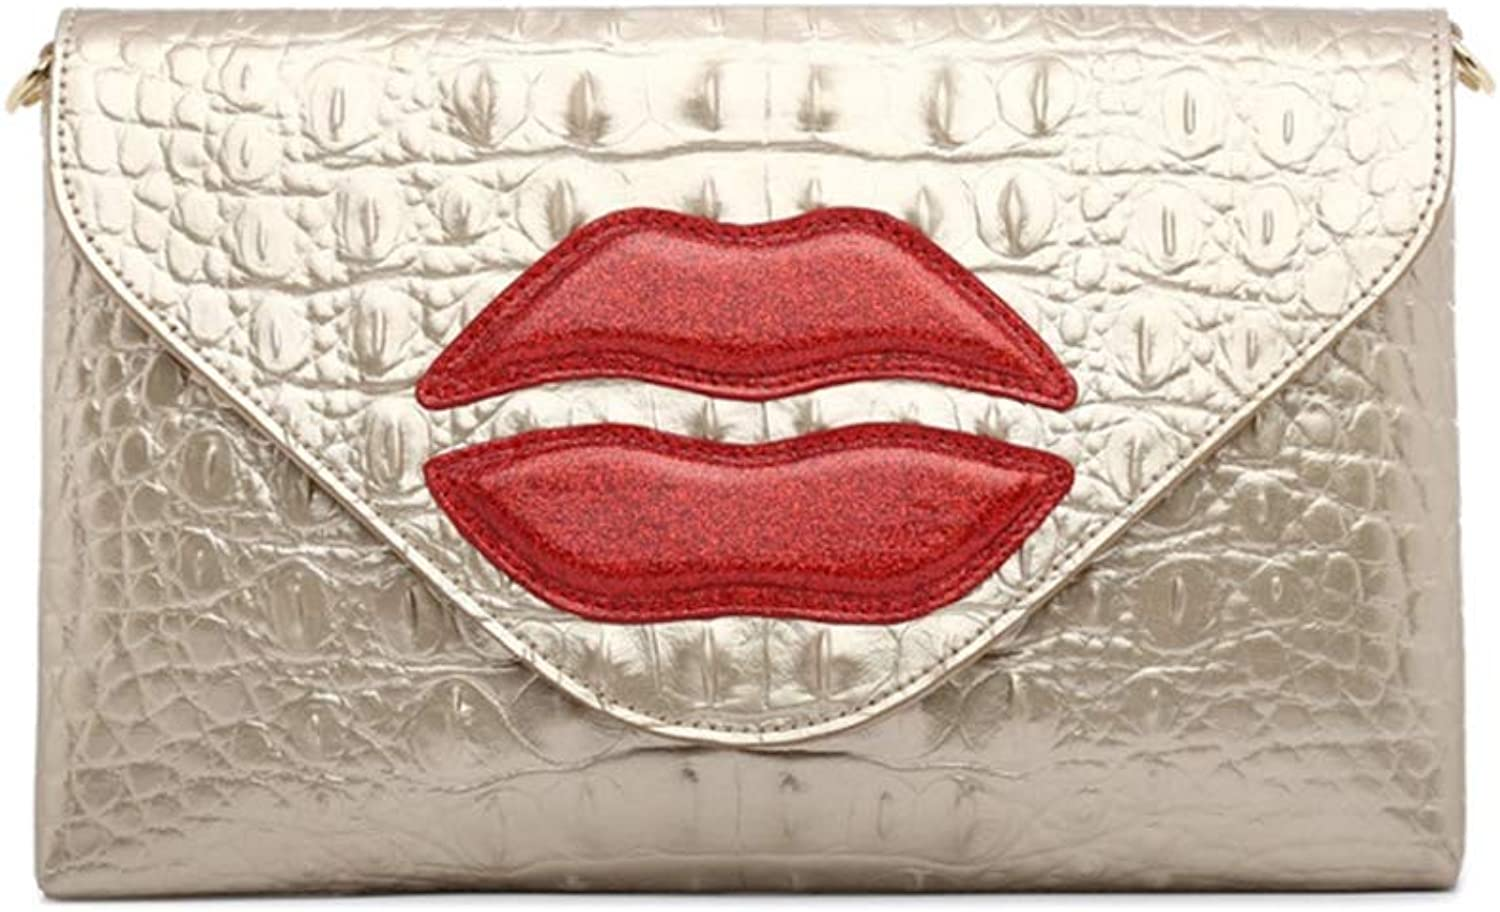 LVCSIUE European Women Black Genuine Leather Day Clutches with Red Crystal Lips Pattern Lady Crocodile Leather Wedding Purses